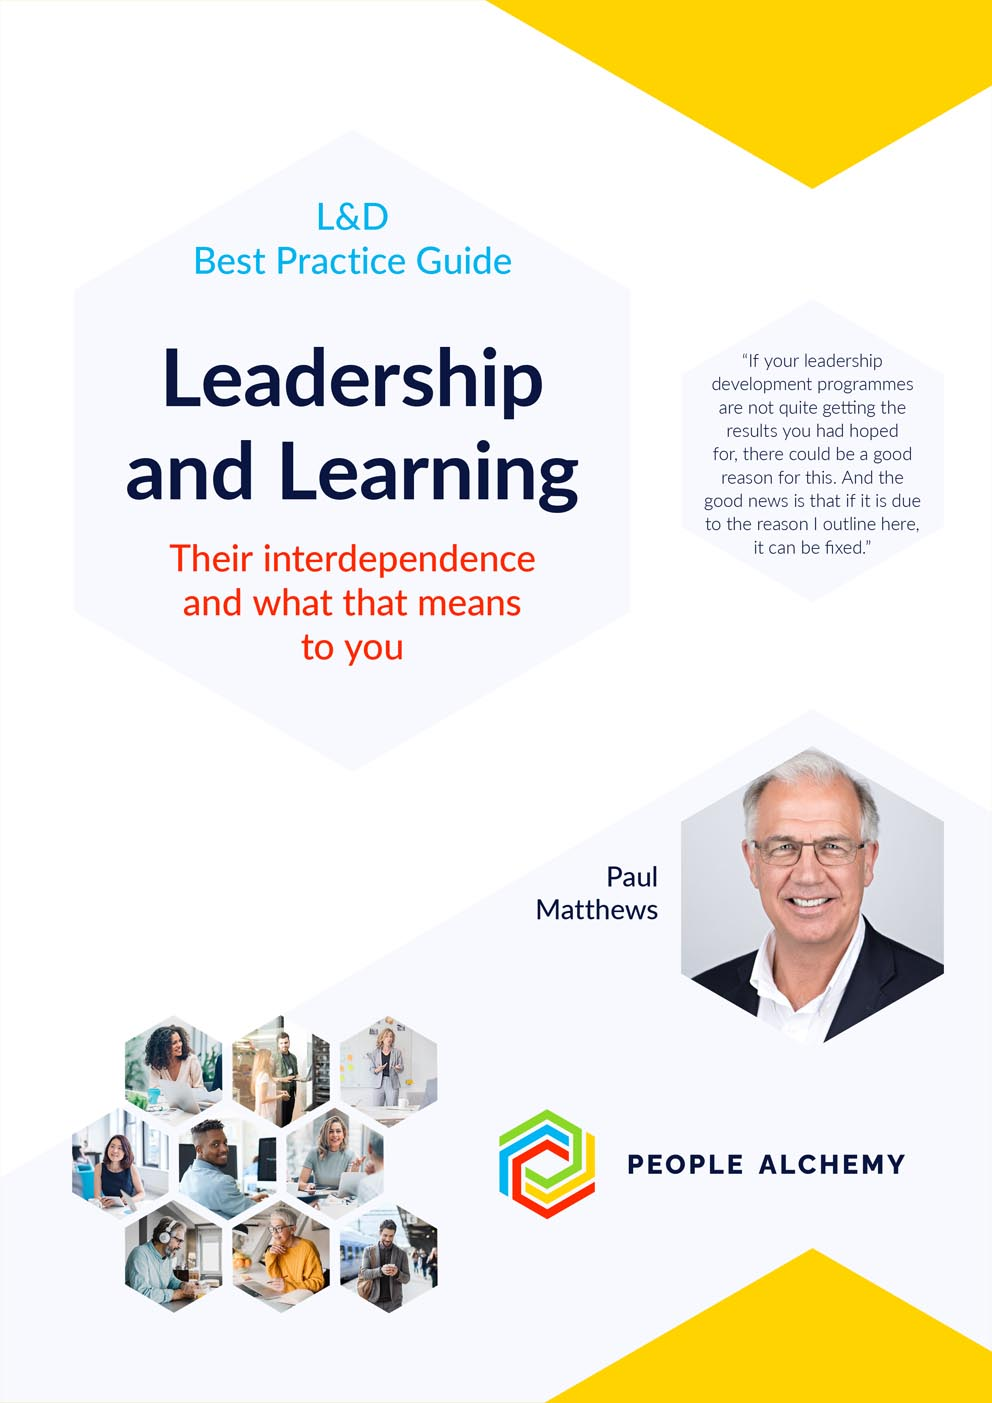 https://peoplealchemy.com/wp-content/uploads/2021/09/PA-Best-Practice-Guides-2021-covers-4.jpg